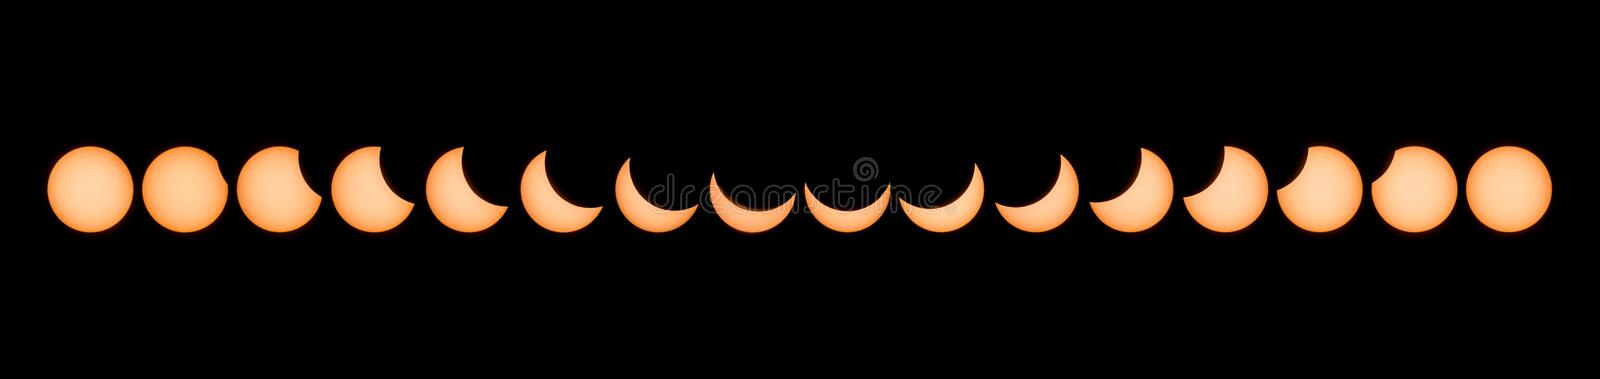 Phases of partial solar eclipse royalty free stock images